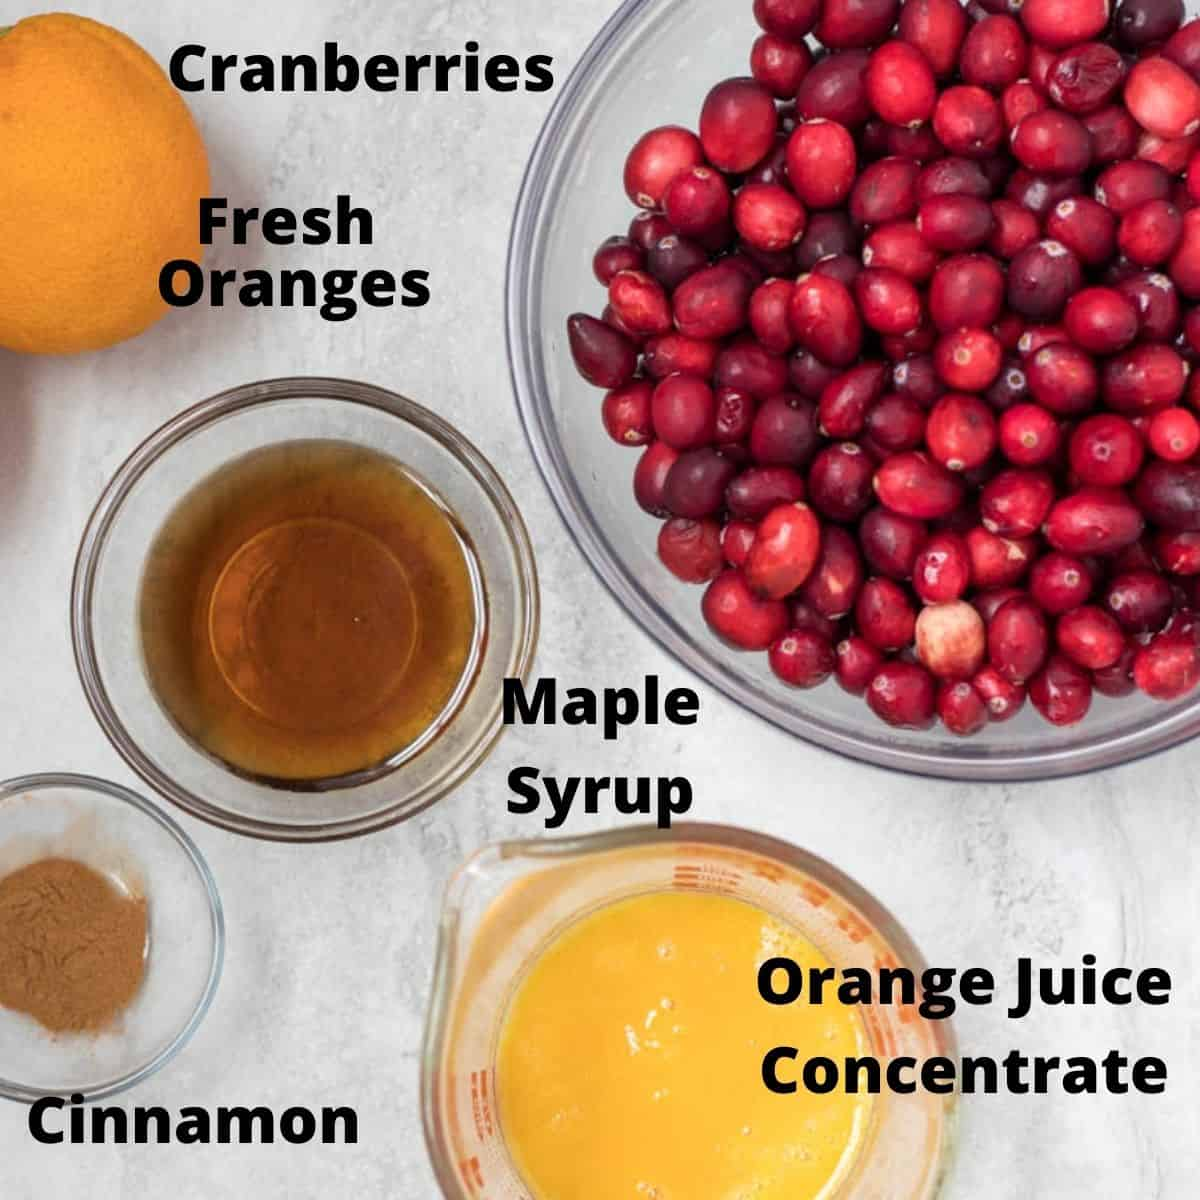 Ingredients for Cranberry Sauce labeled on white counter.